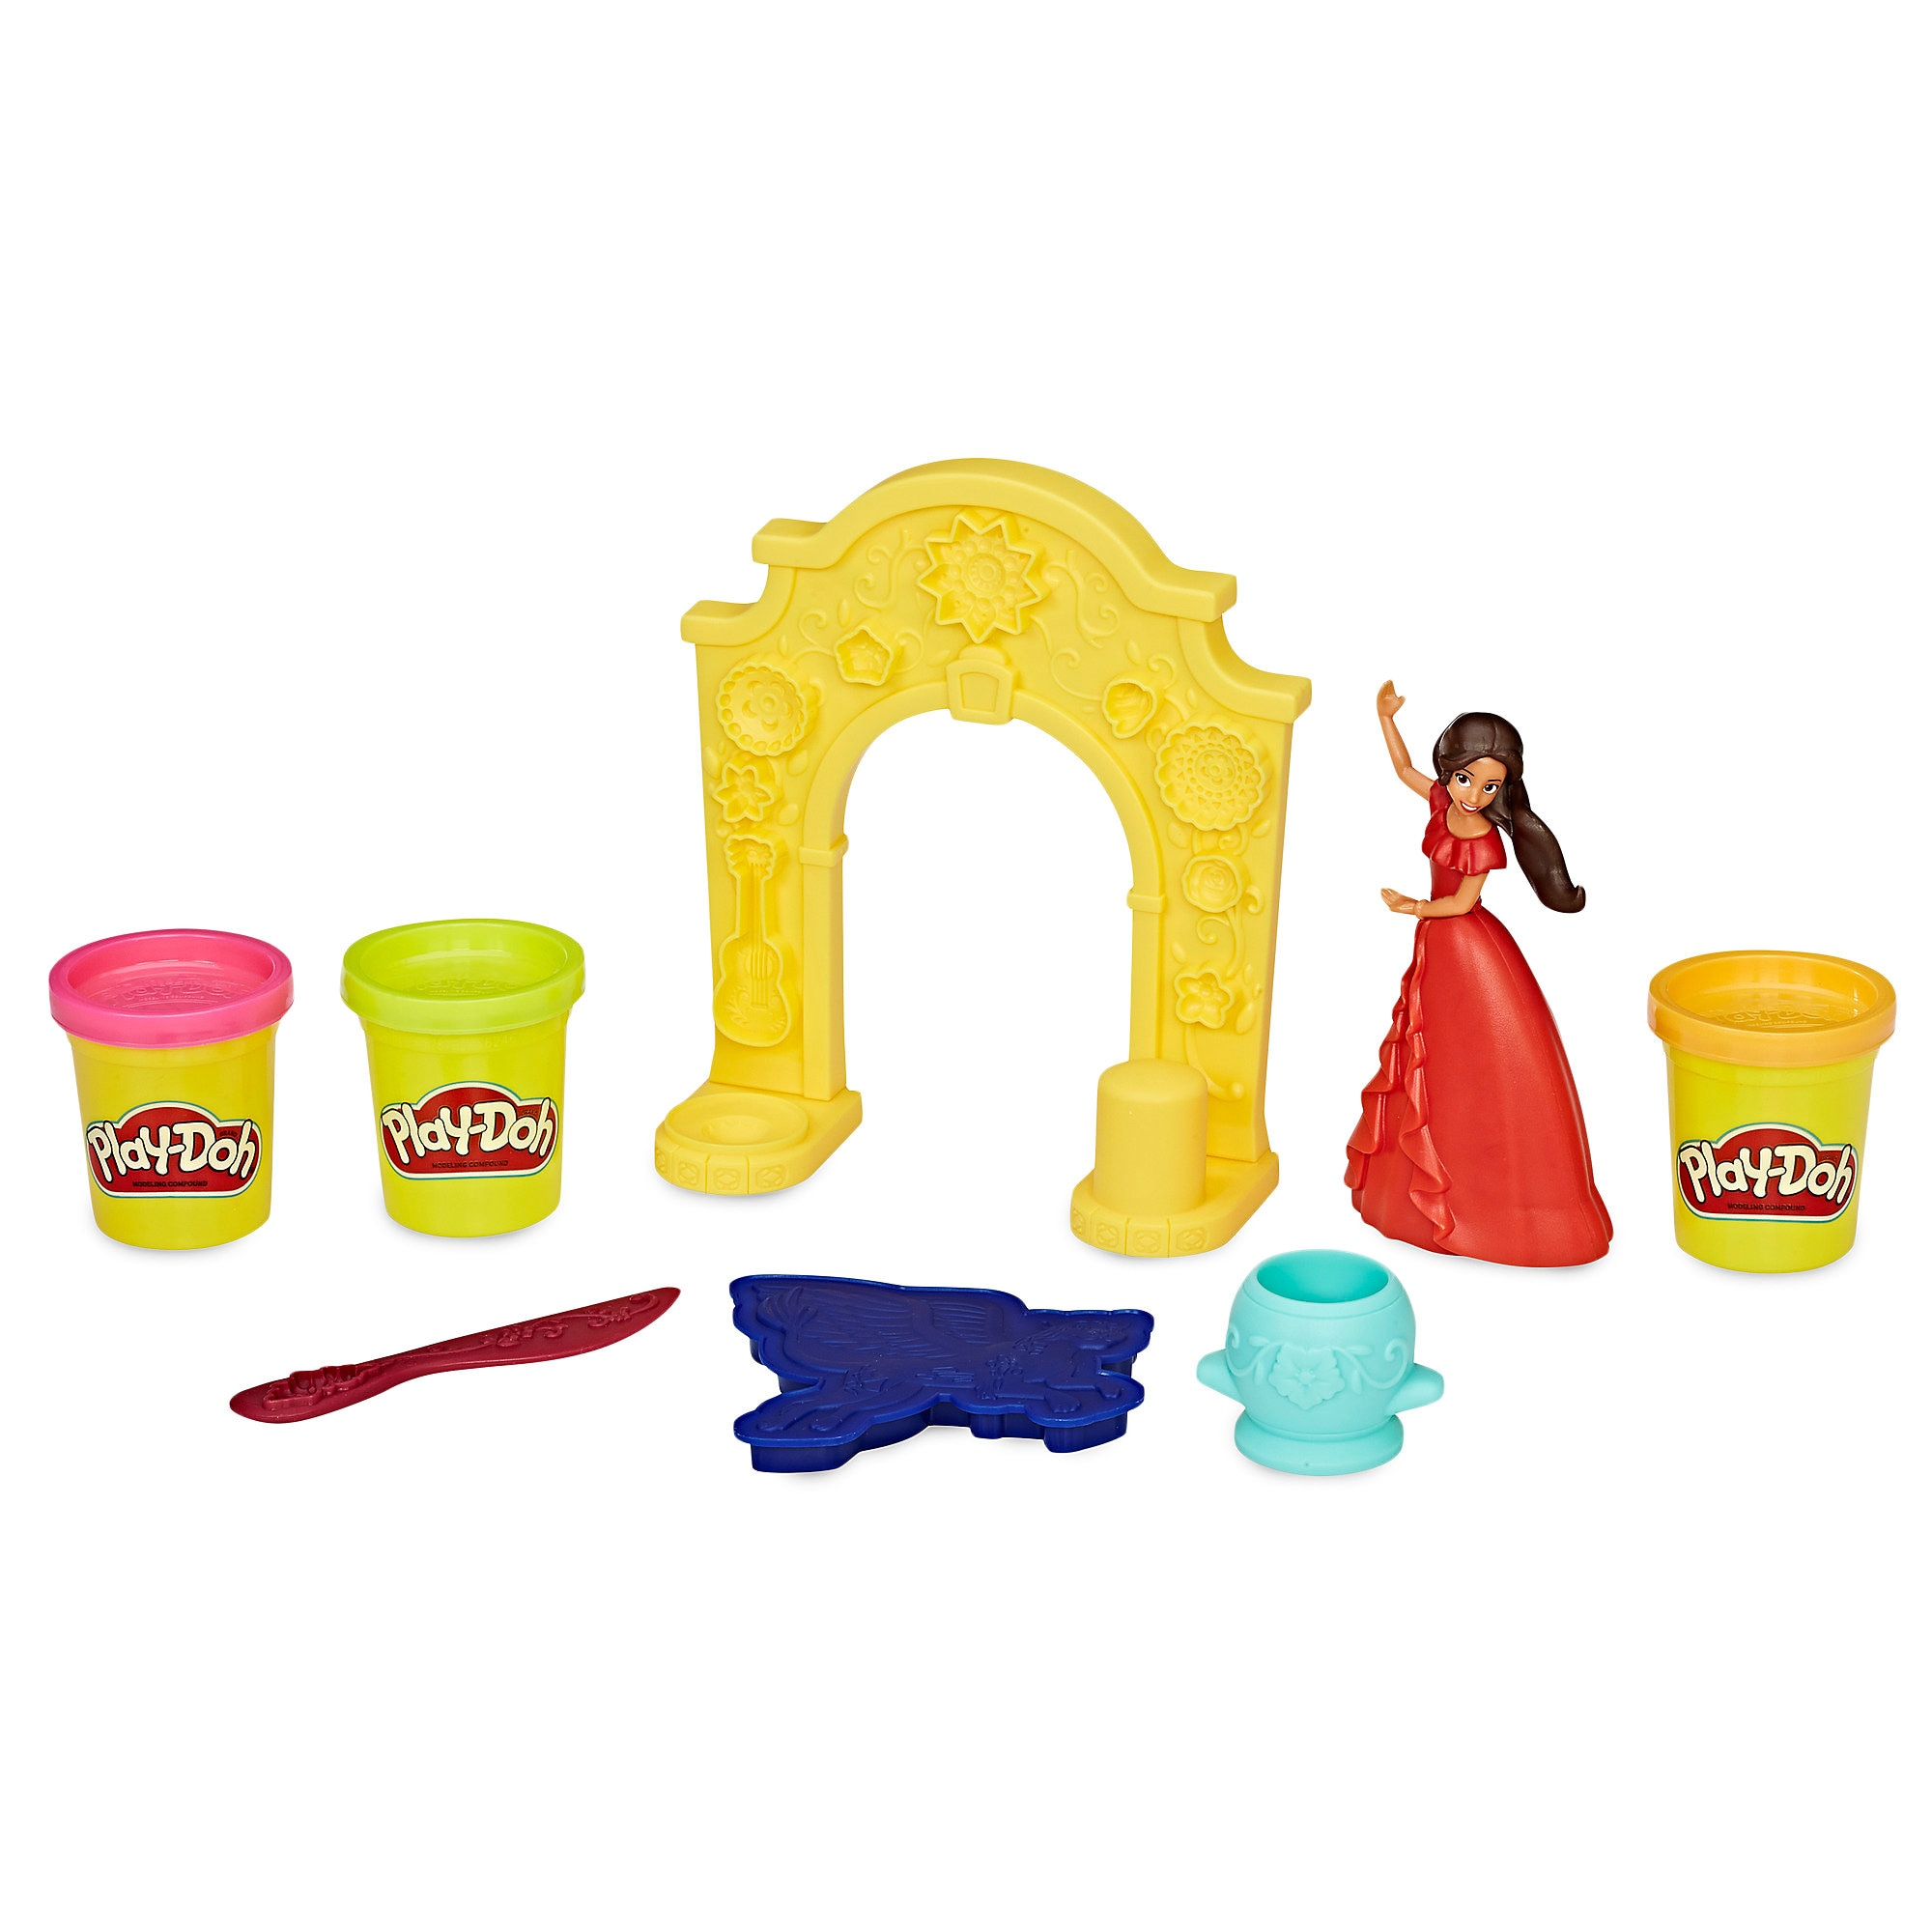 Elena of Avalor Royal Fiesta Play-Doh Set